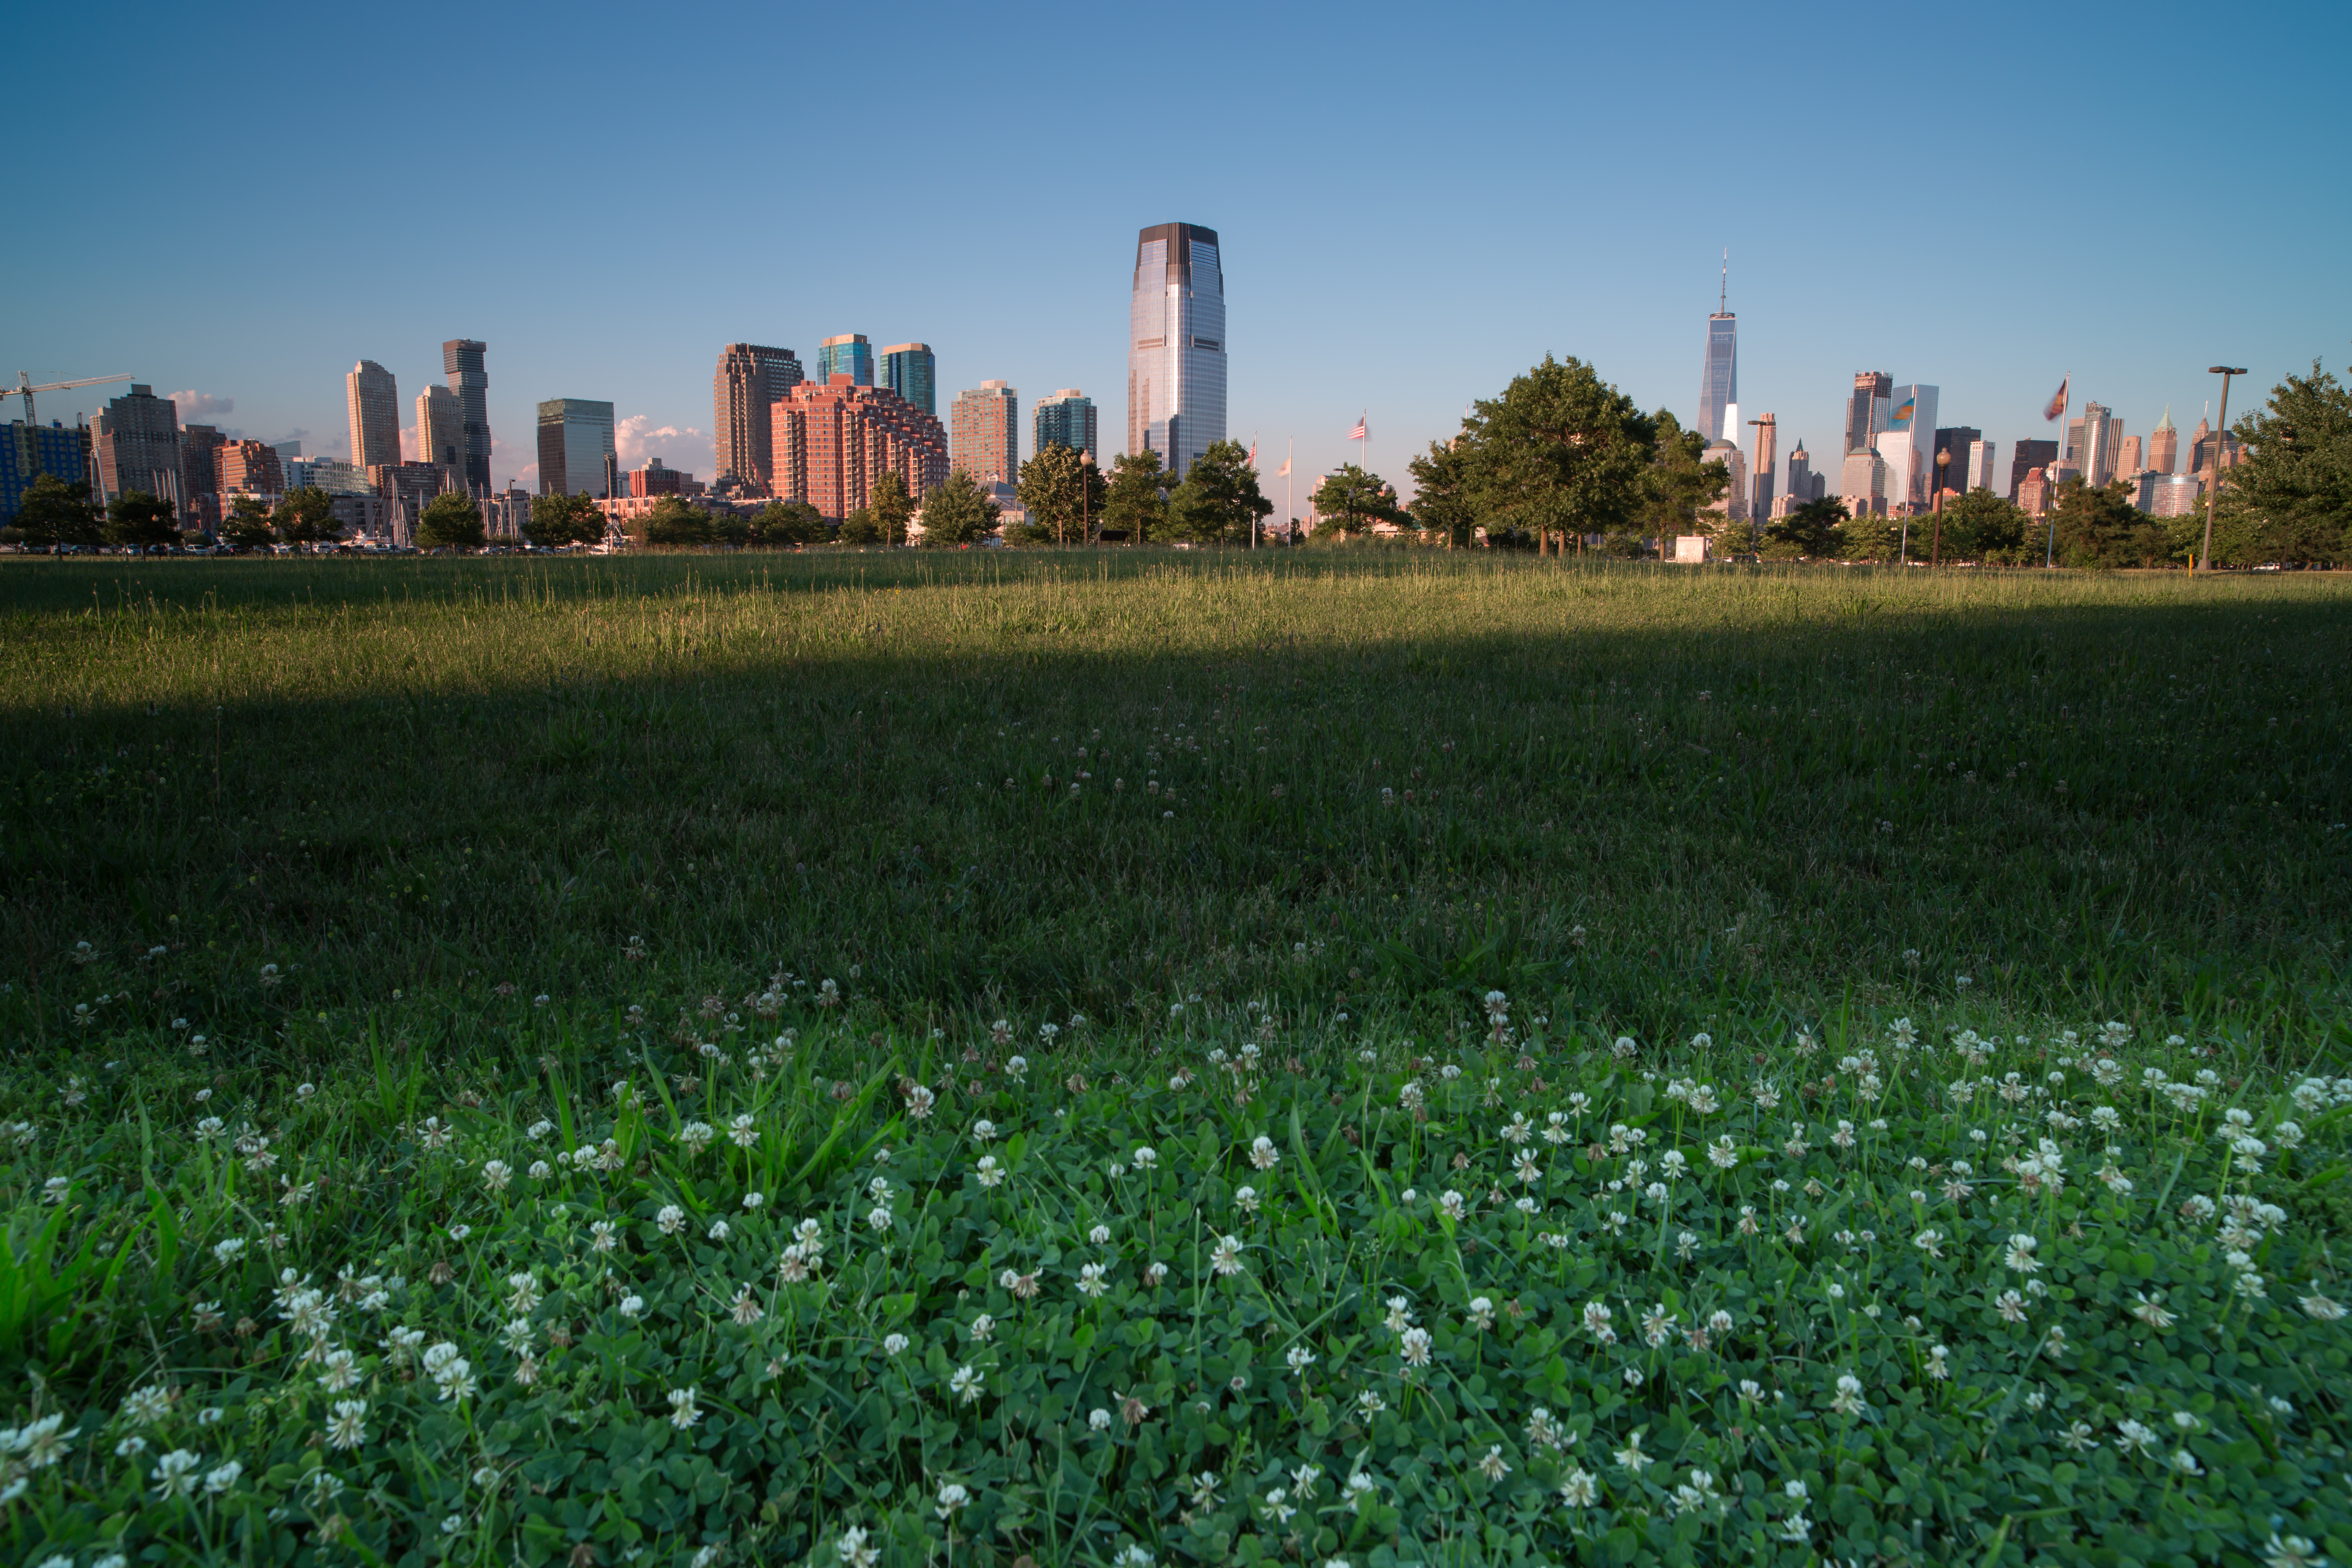 Jersey city from grass viewpoint example image 1